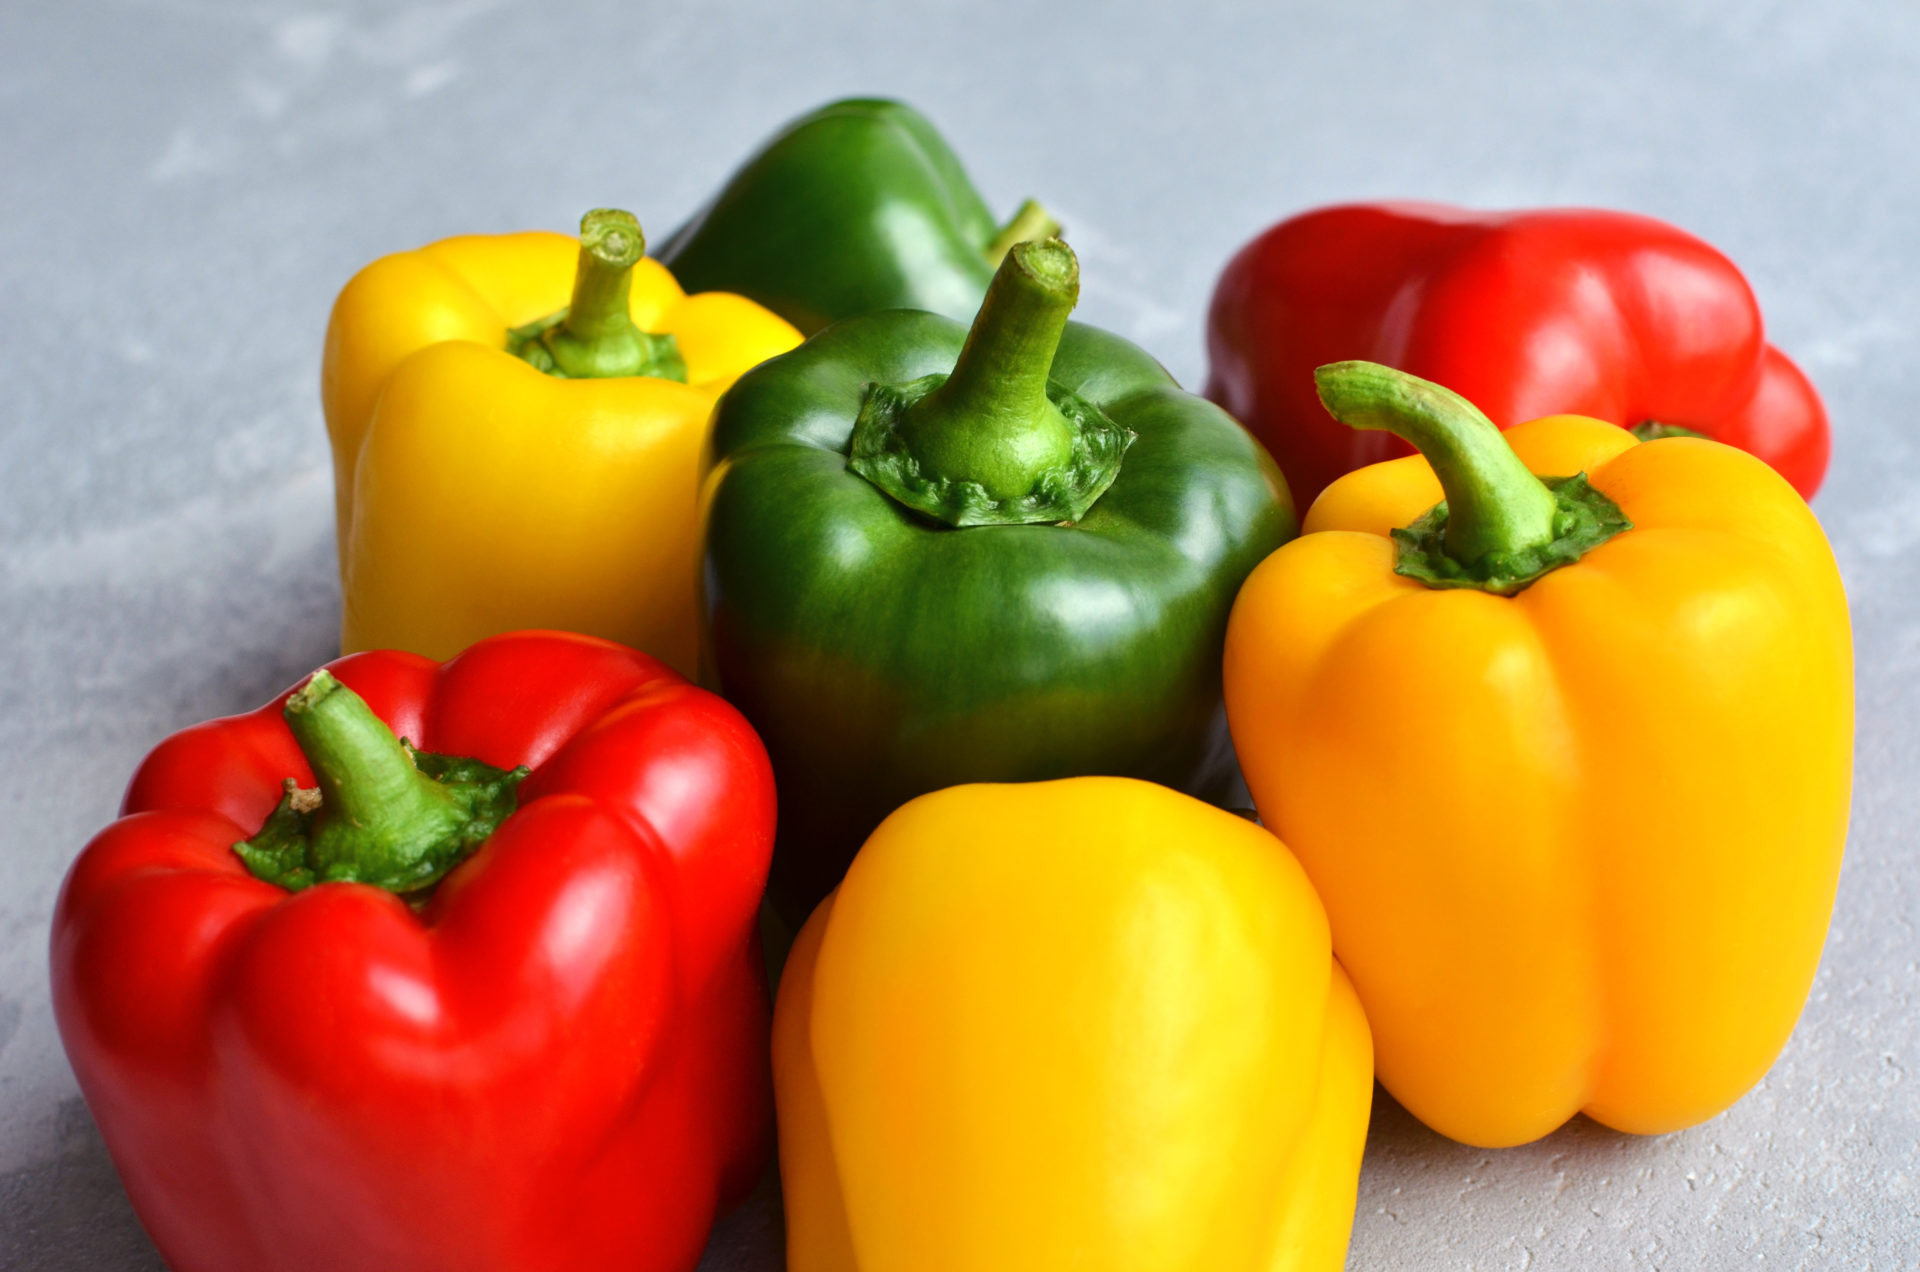 Green,,Red,And,Yellow,Bell,Pepper,On,Grey,Stone,Background.